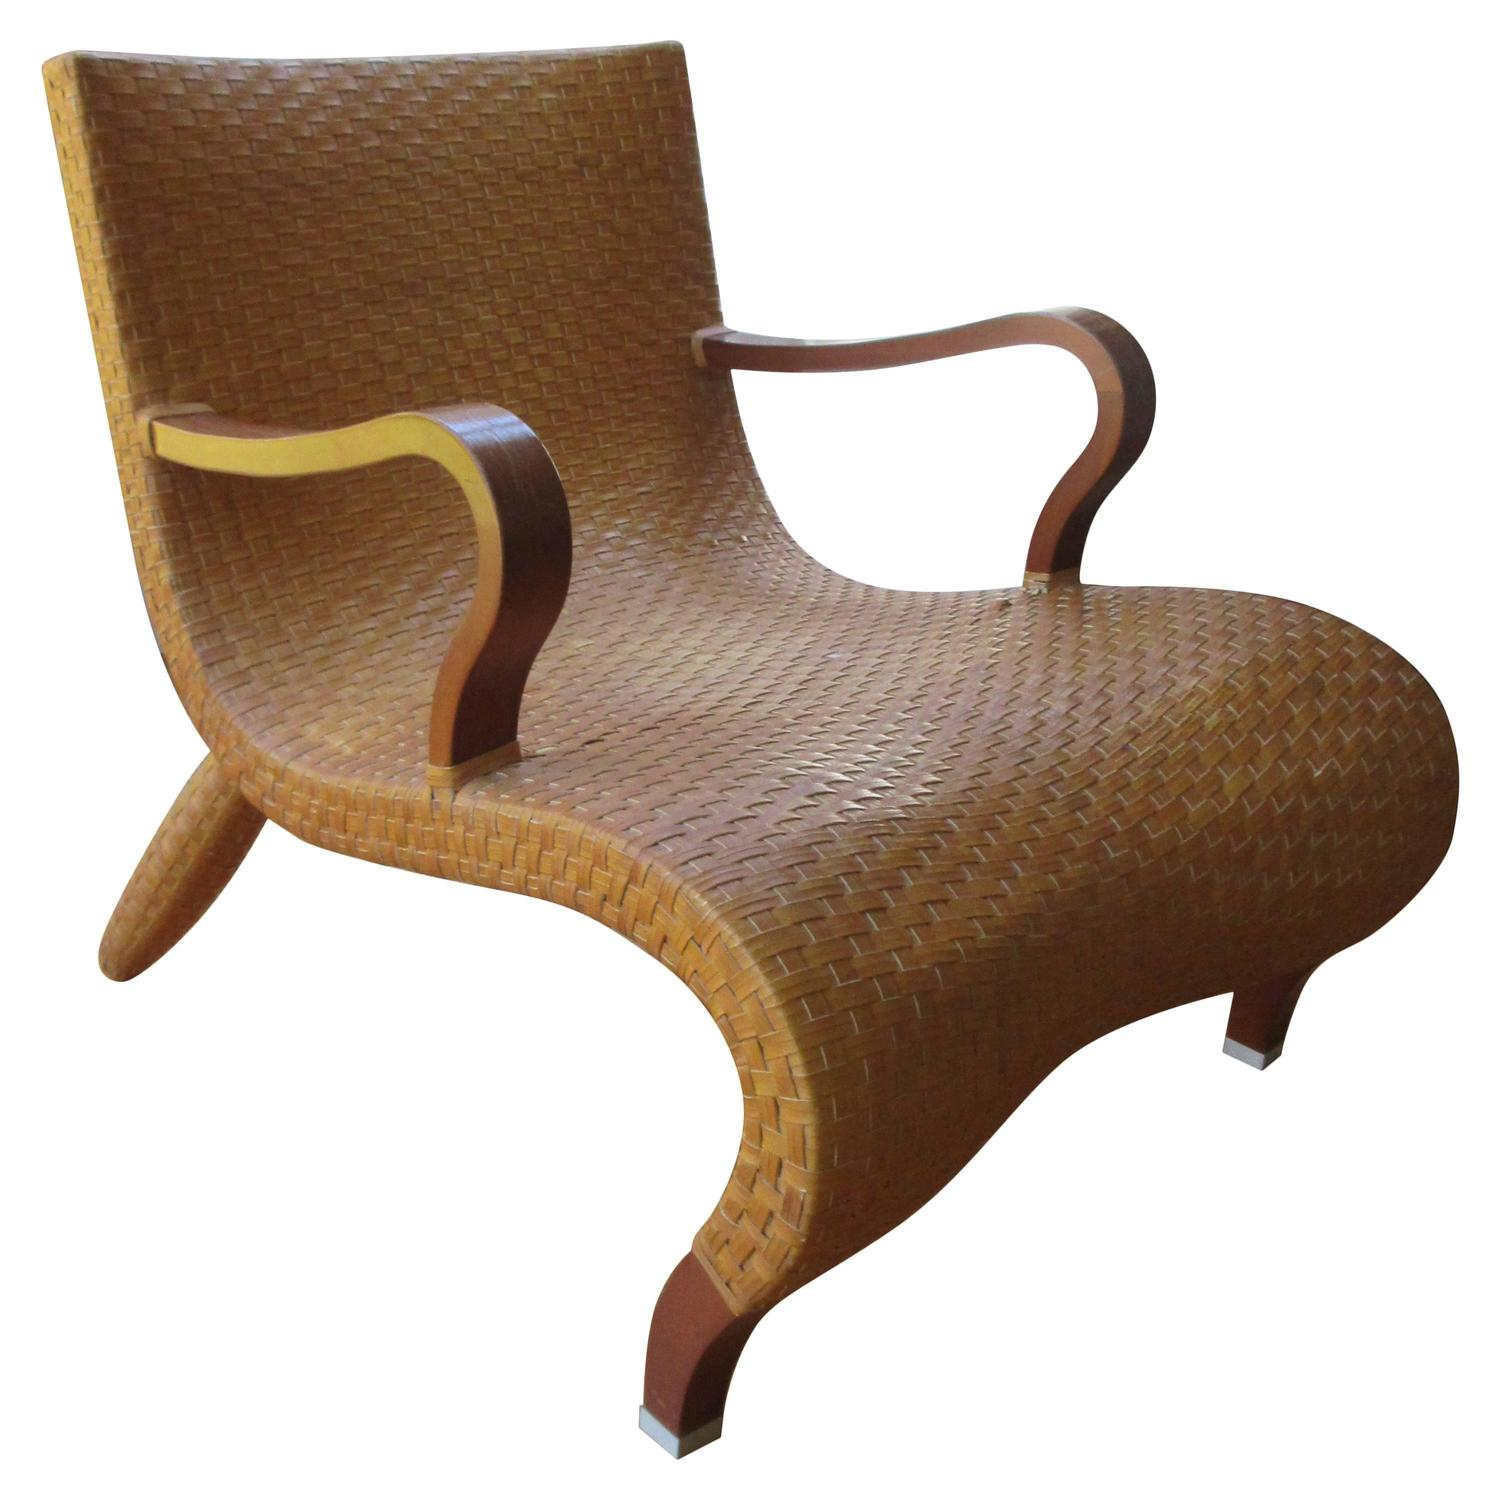 Rare leather woven mid century modern oversized armchair for Oversized armchairs for sale